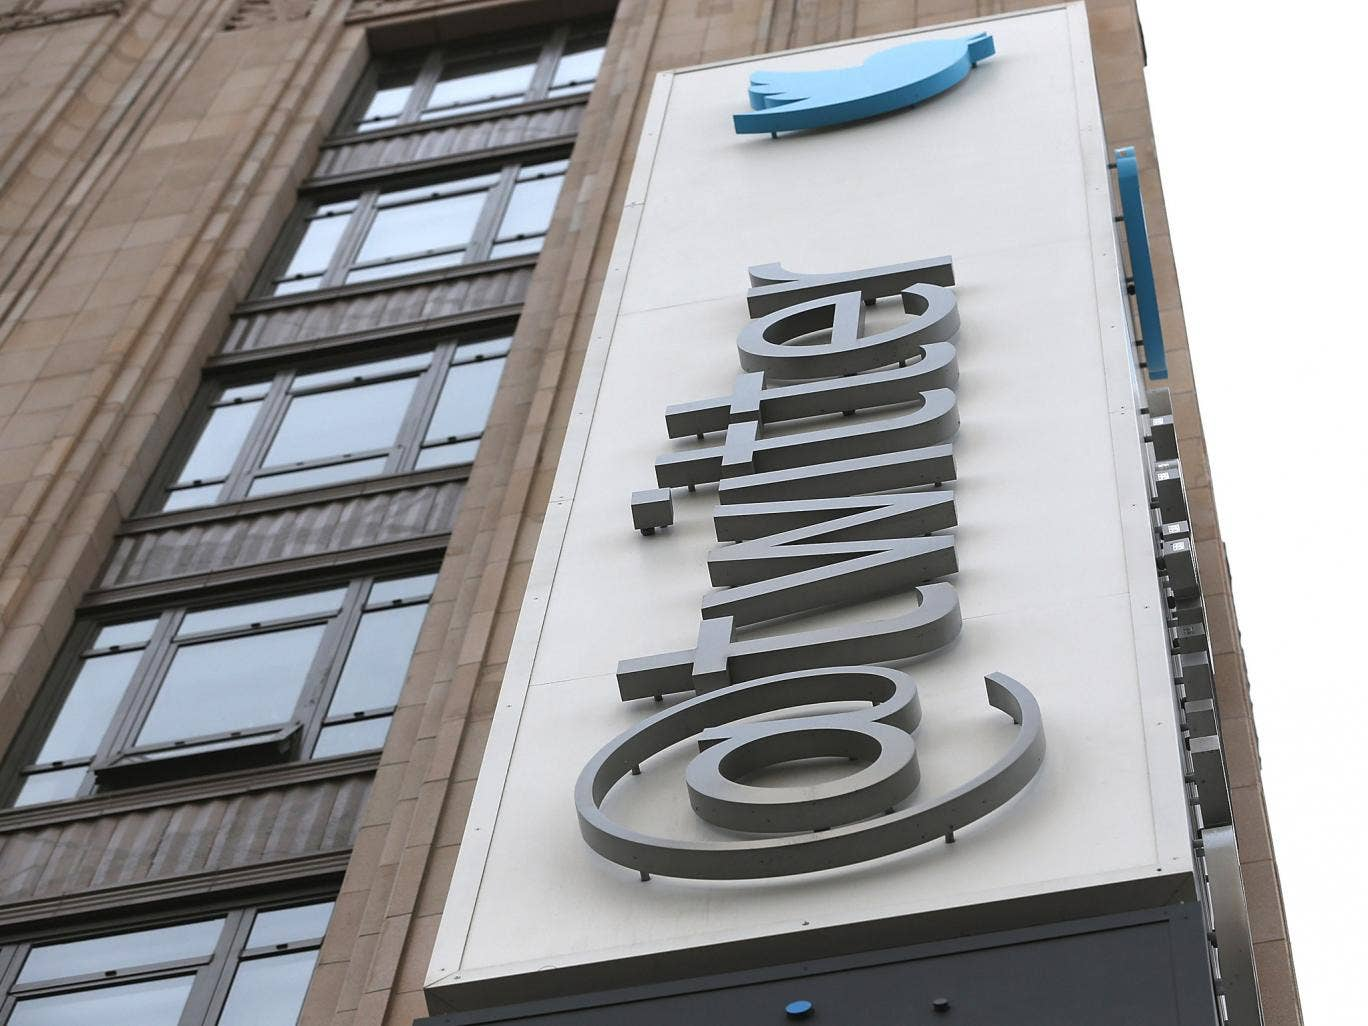 The Twitter headquarters in San Francisco, California